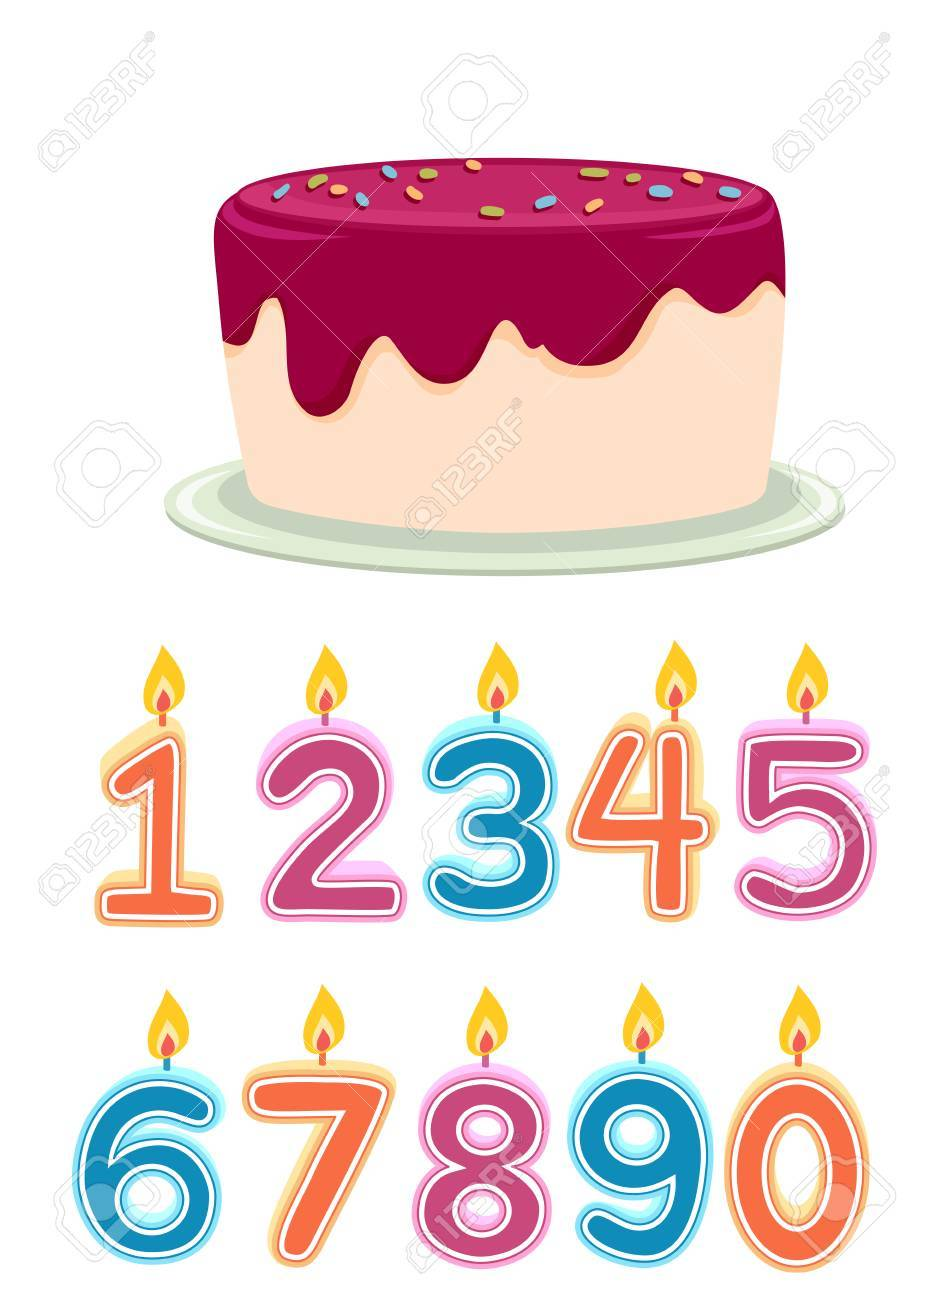 Colorful Illustration Featuring A Frosted Birthday Cake With Lit Candles Shaped Like Numbers Placed Below It